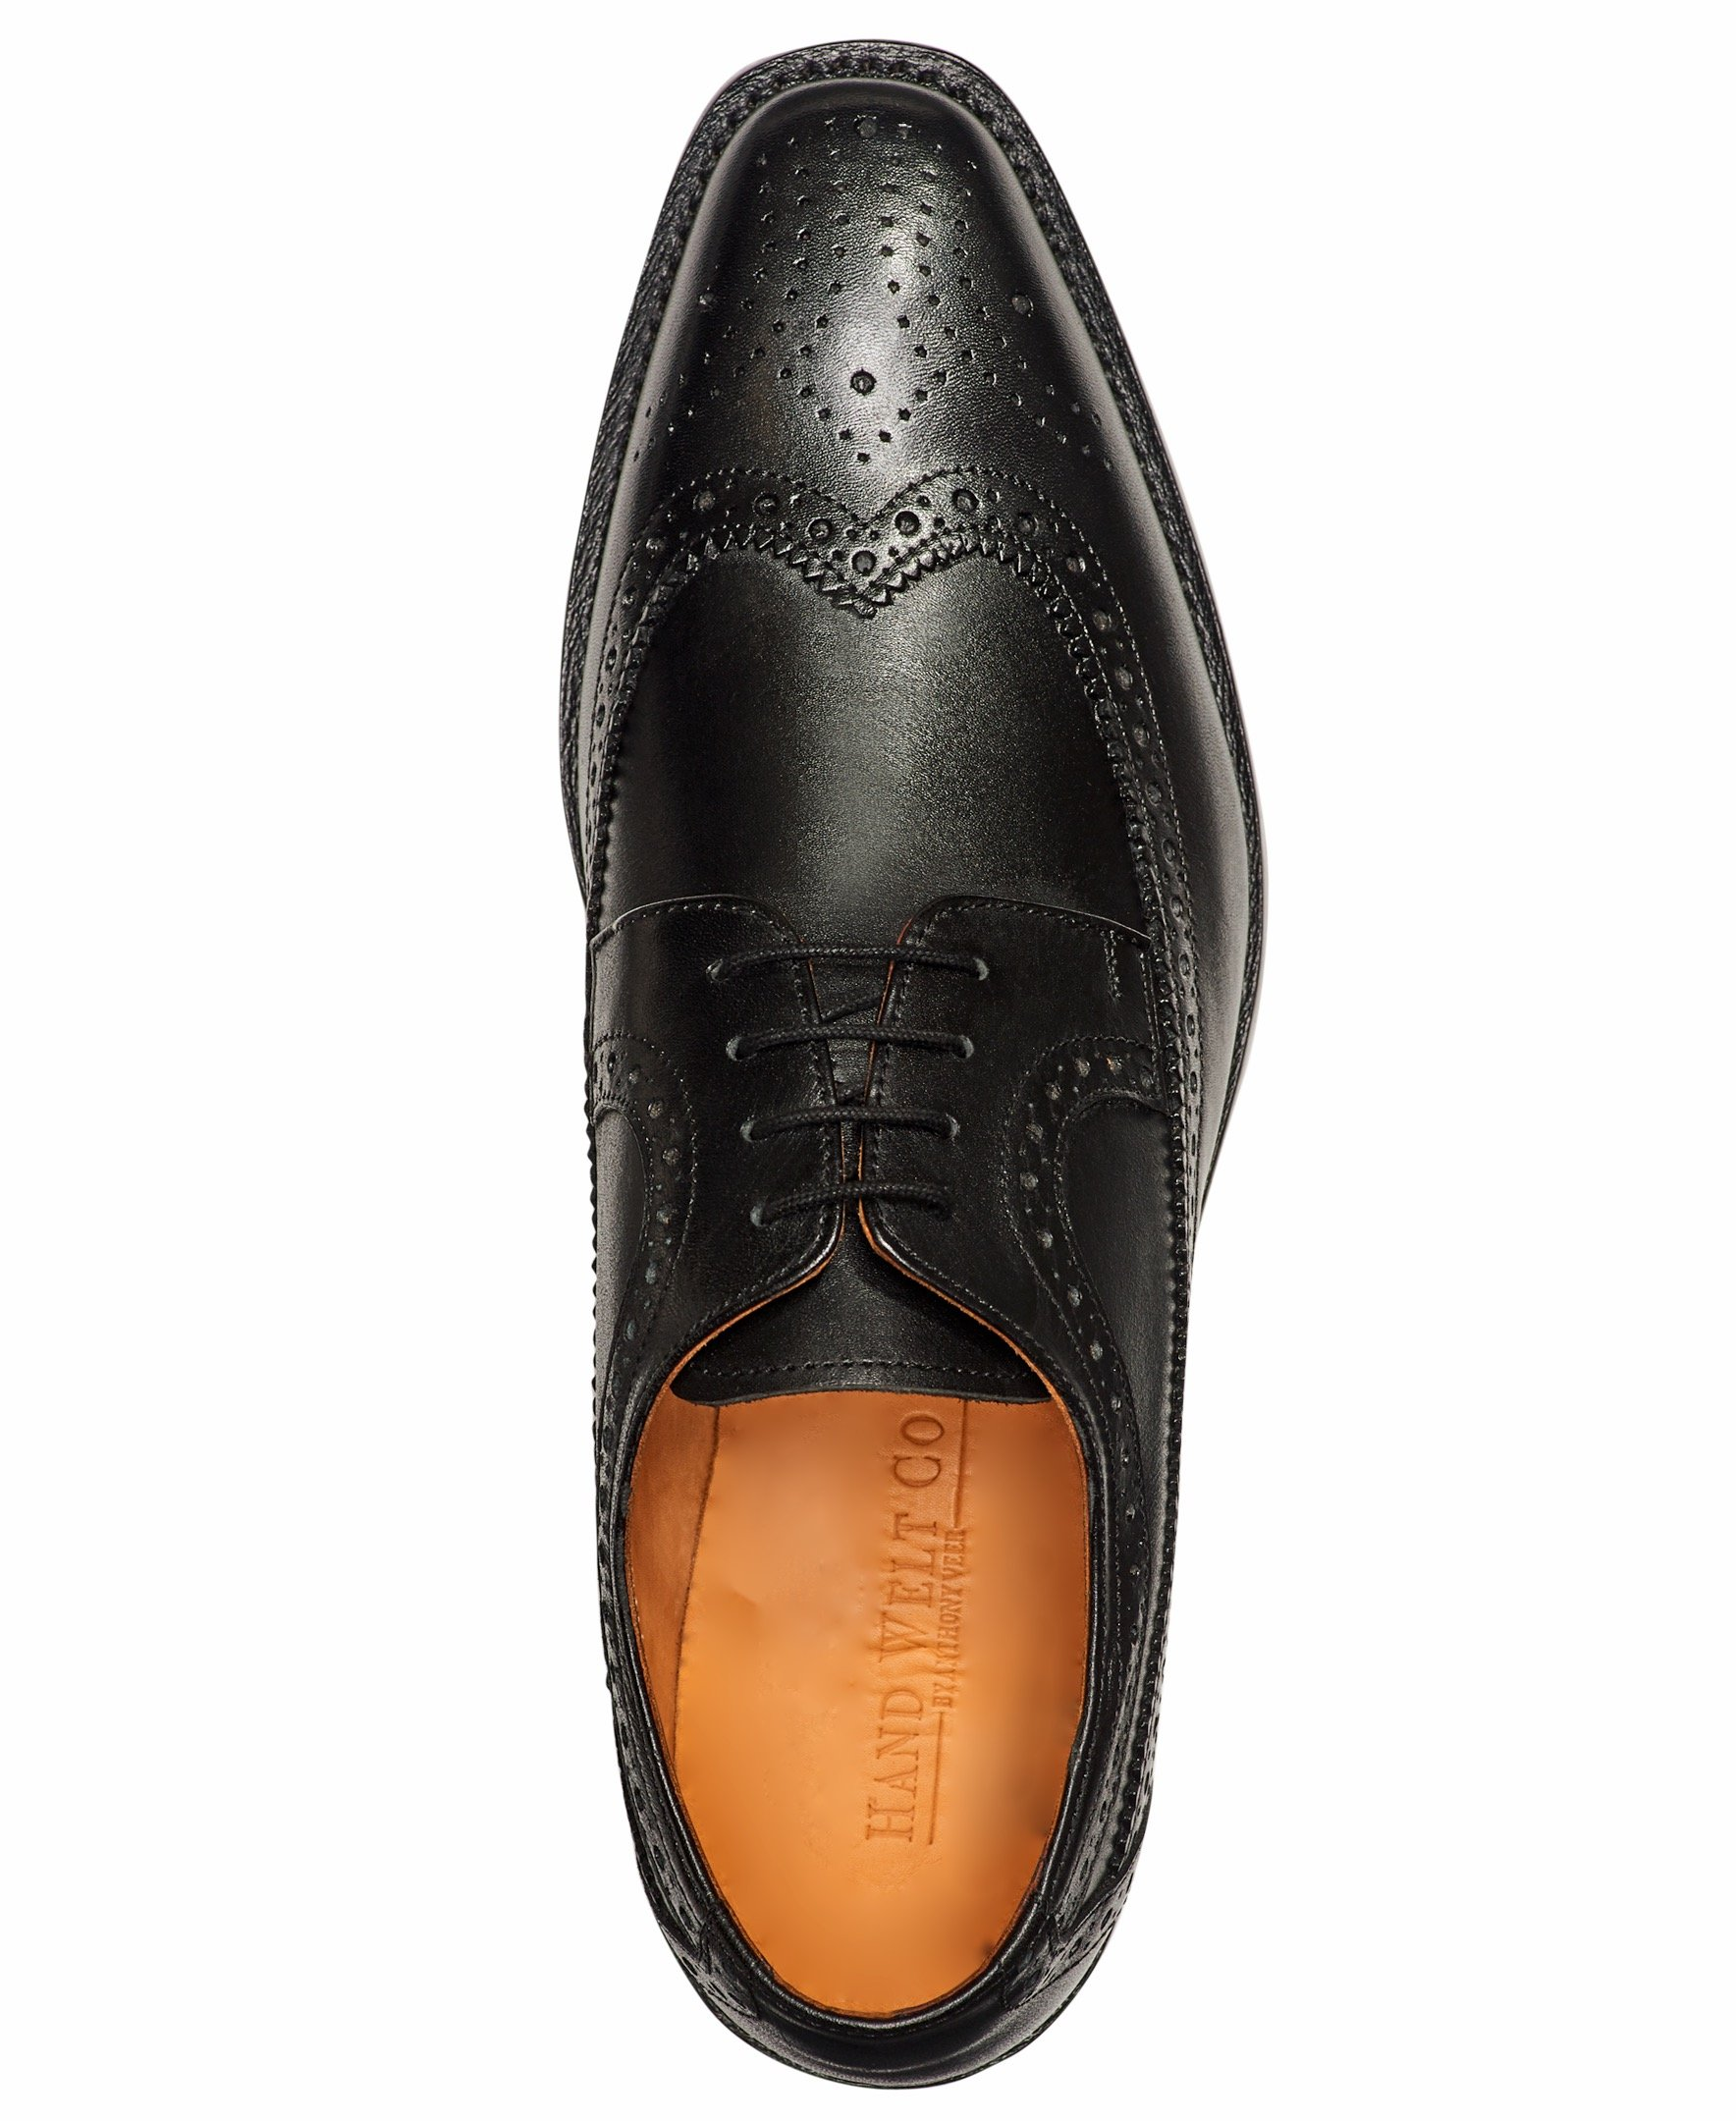 Anthony Veer Mens Regan Oxford Full Brogue Leather Shoes in Goodyear Welted Construction (8.5 D, Black) by Anthony Veer (Image #4)